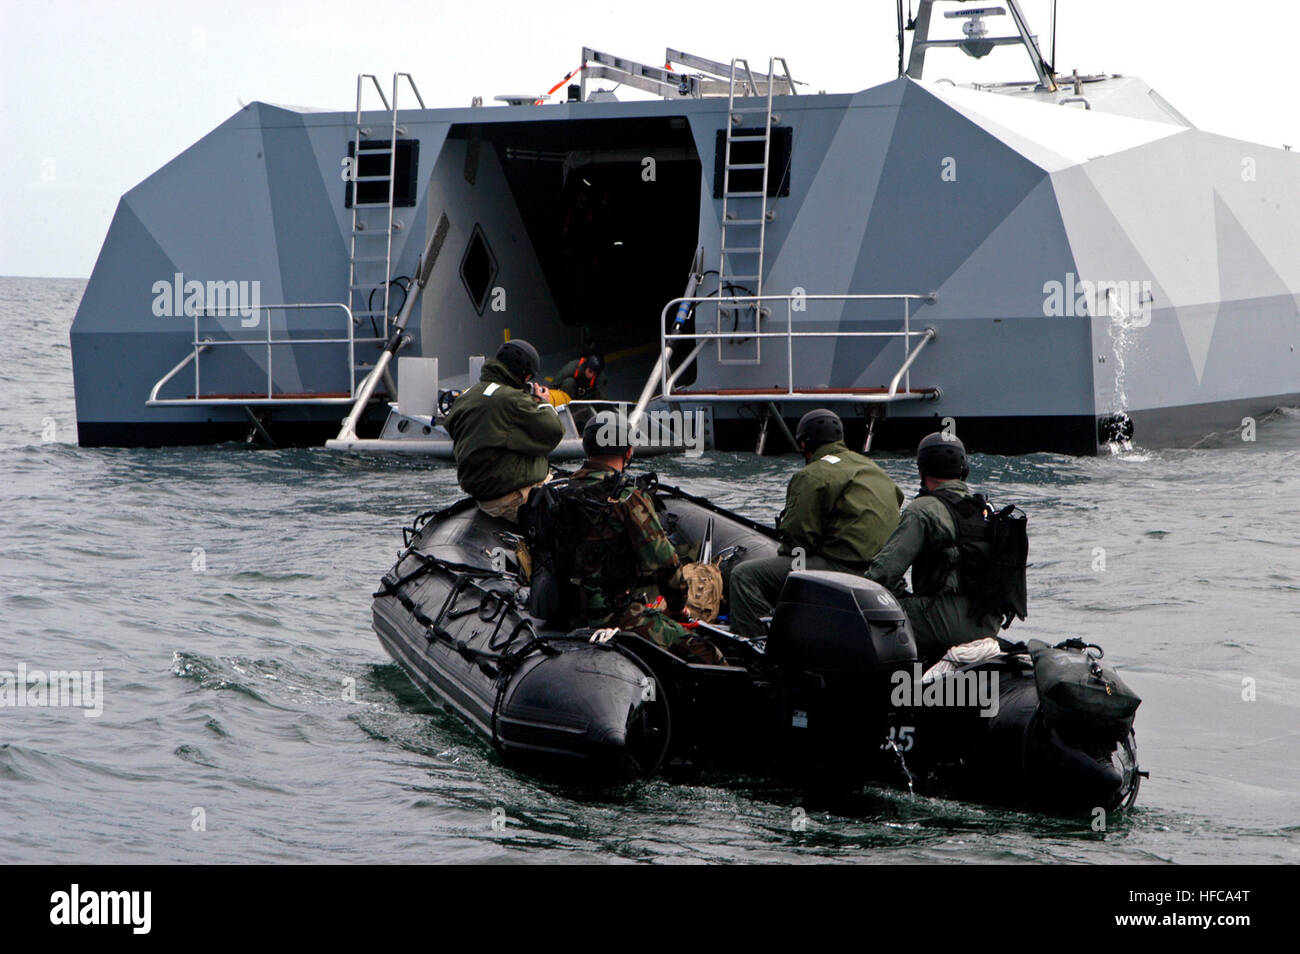 060506-N-4021H-122 San Diego (May 6, 2006) - Sailors assigned to Naval Special Clearance Team One (NSCT-1) prepare - Stock Image